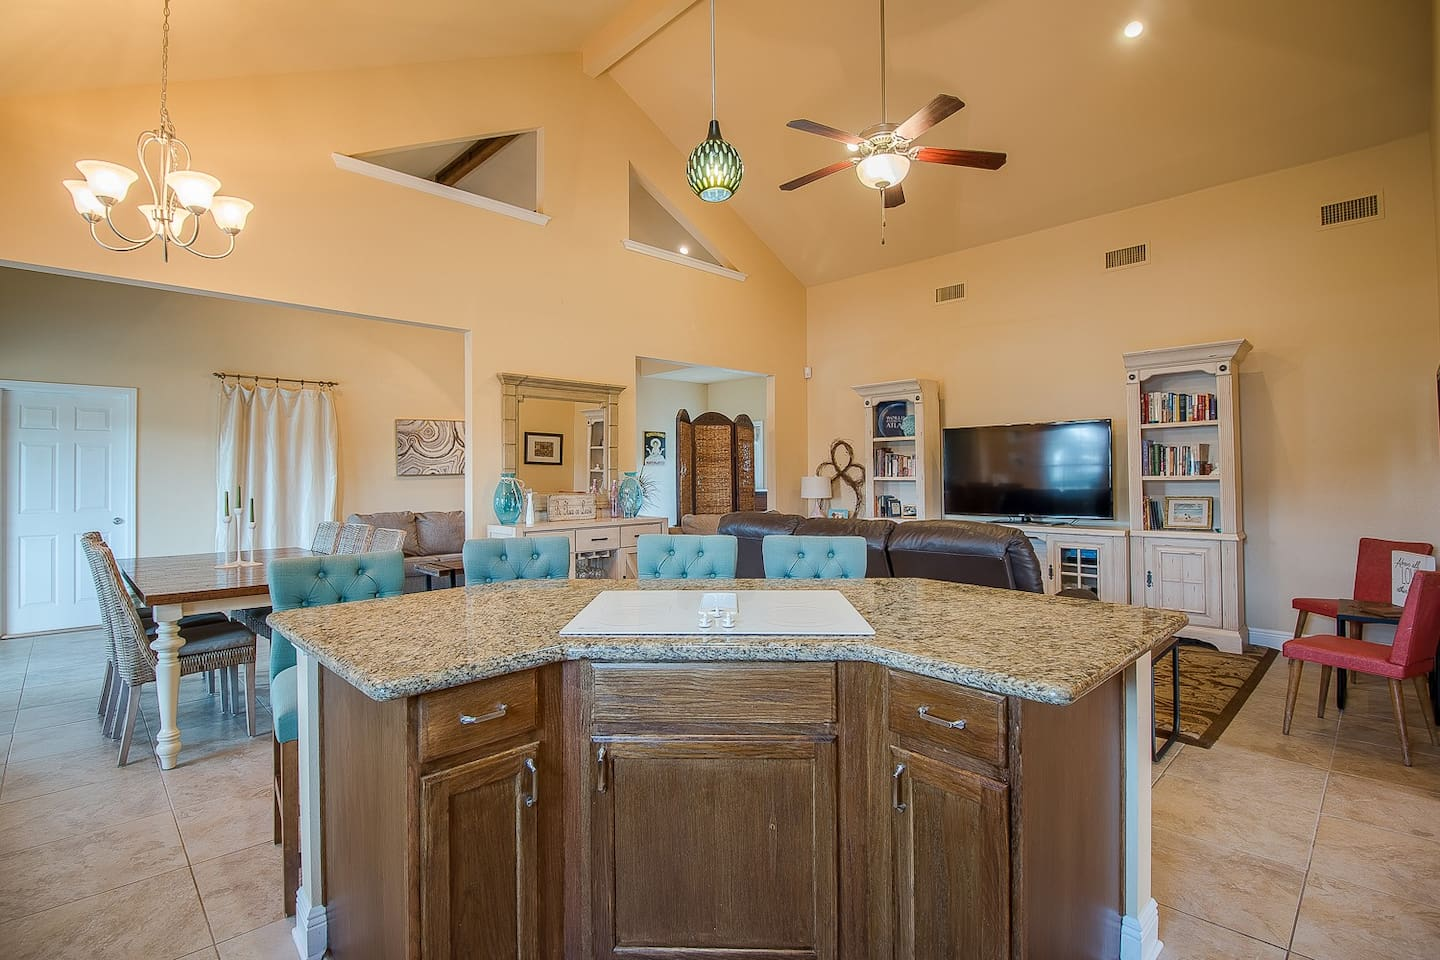 Our beach house is perfect for large groups as it provides ample space to enjoy your time together while being steps to the beach. Our fully stocked kitchen allows you to socialize while making fabulous meals you can enjoy on the gulf facing deck!